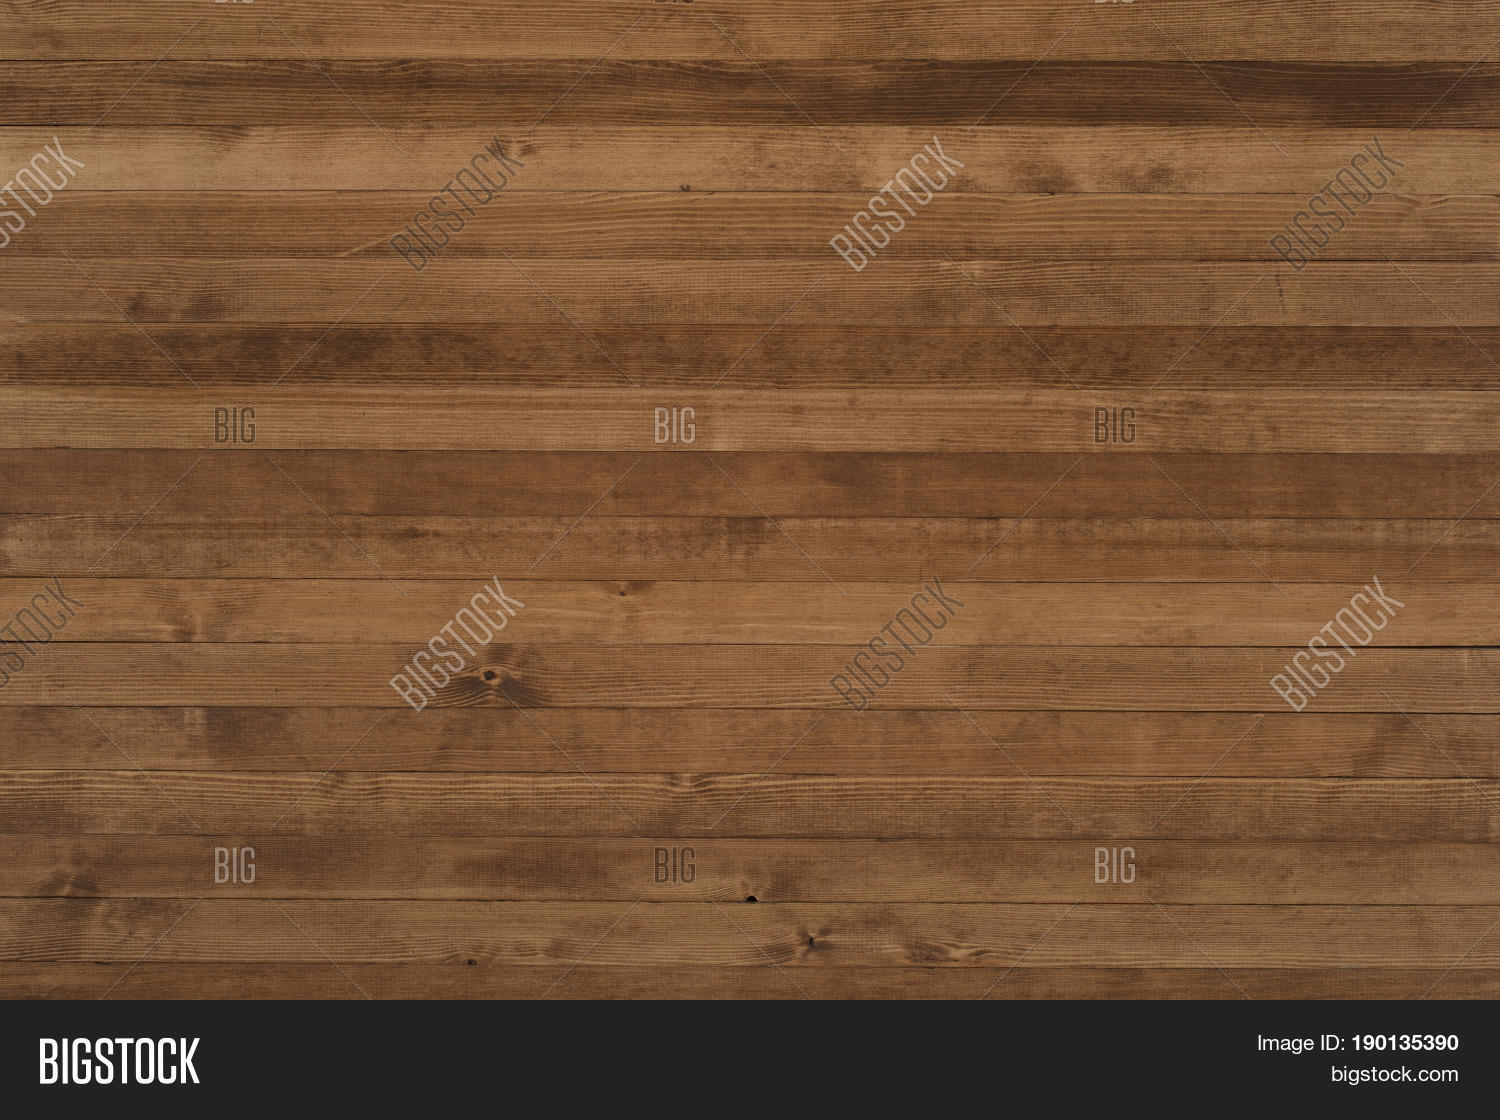 Wooden Table Surface ~ Large dinner empty wood table top image photo bigstock